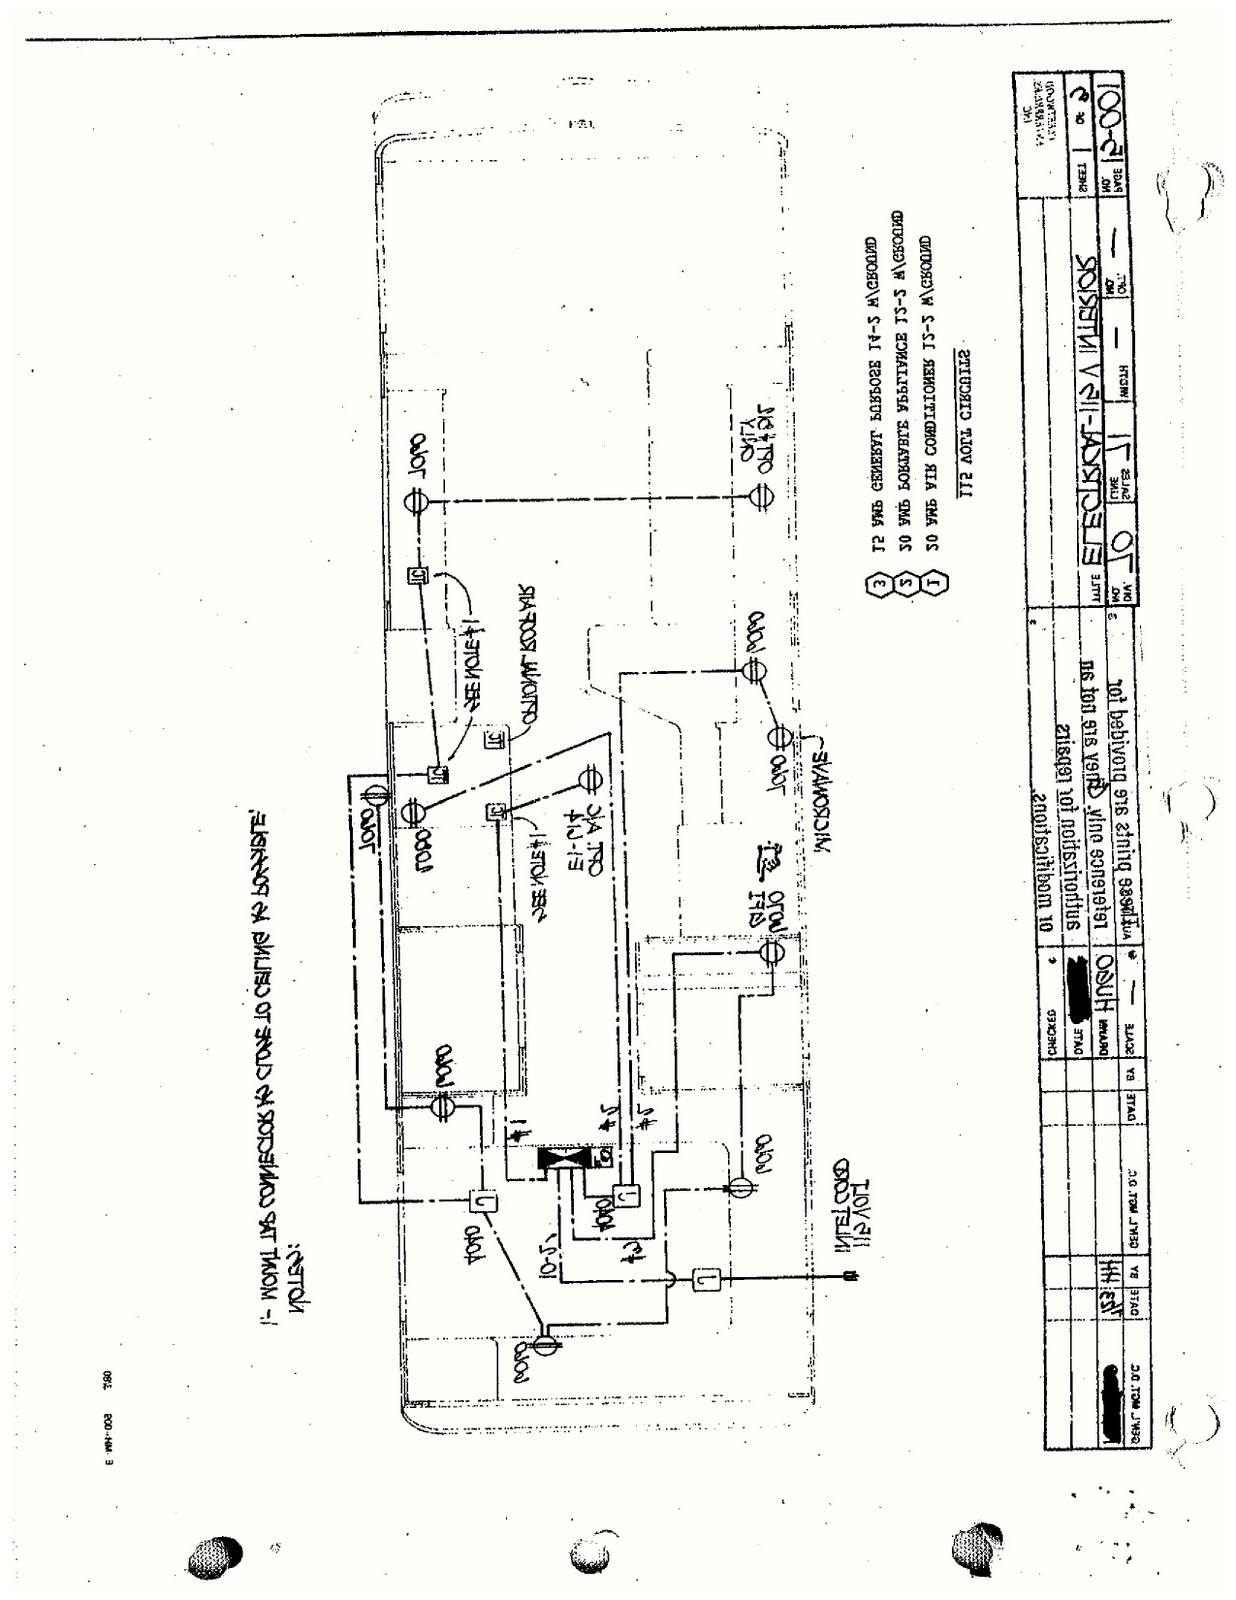 Chevy S10 Wiring Diagram Dlc